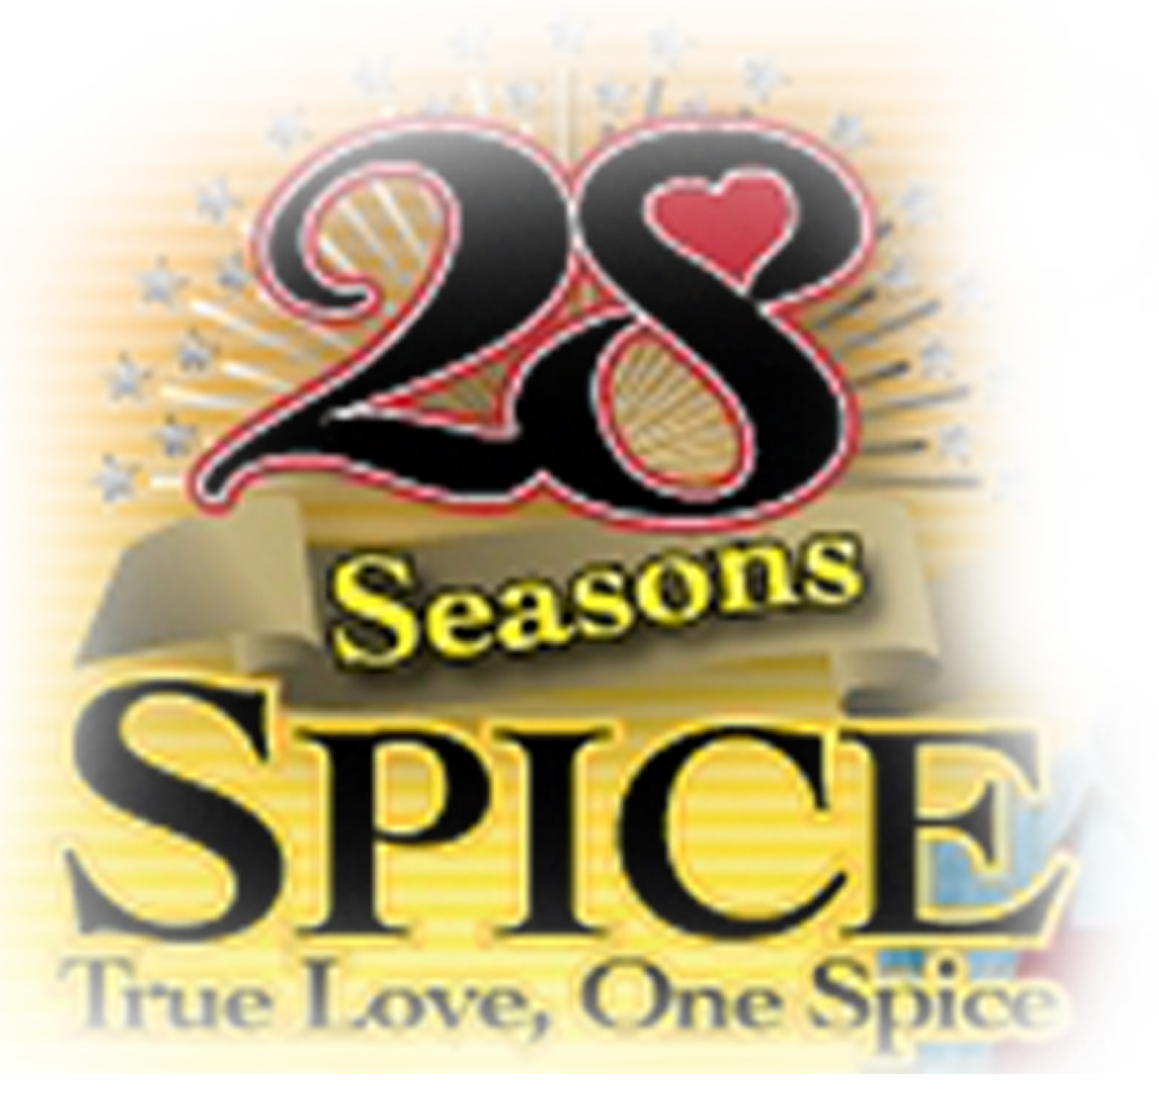 28 Seasons Spice